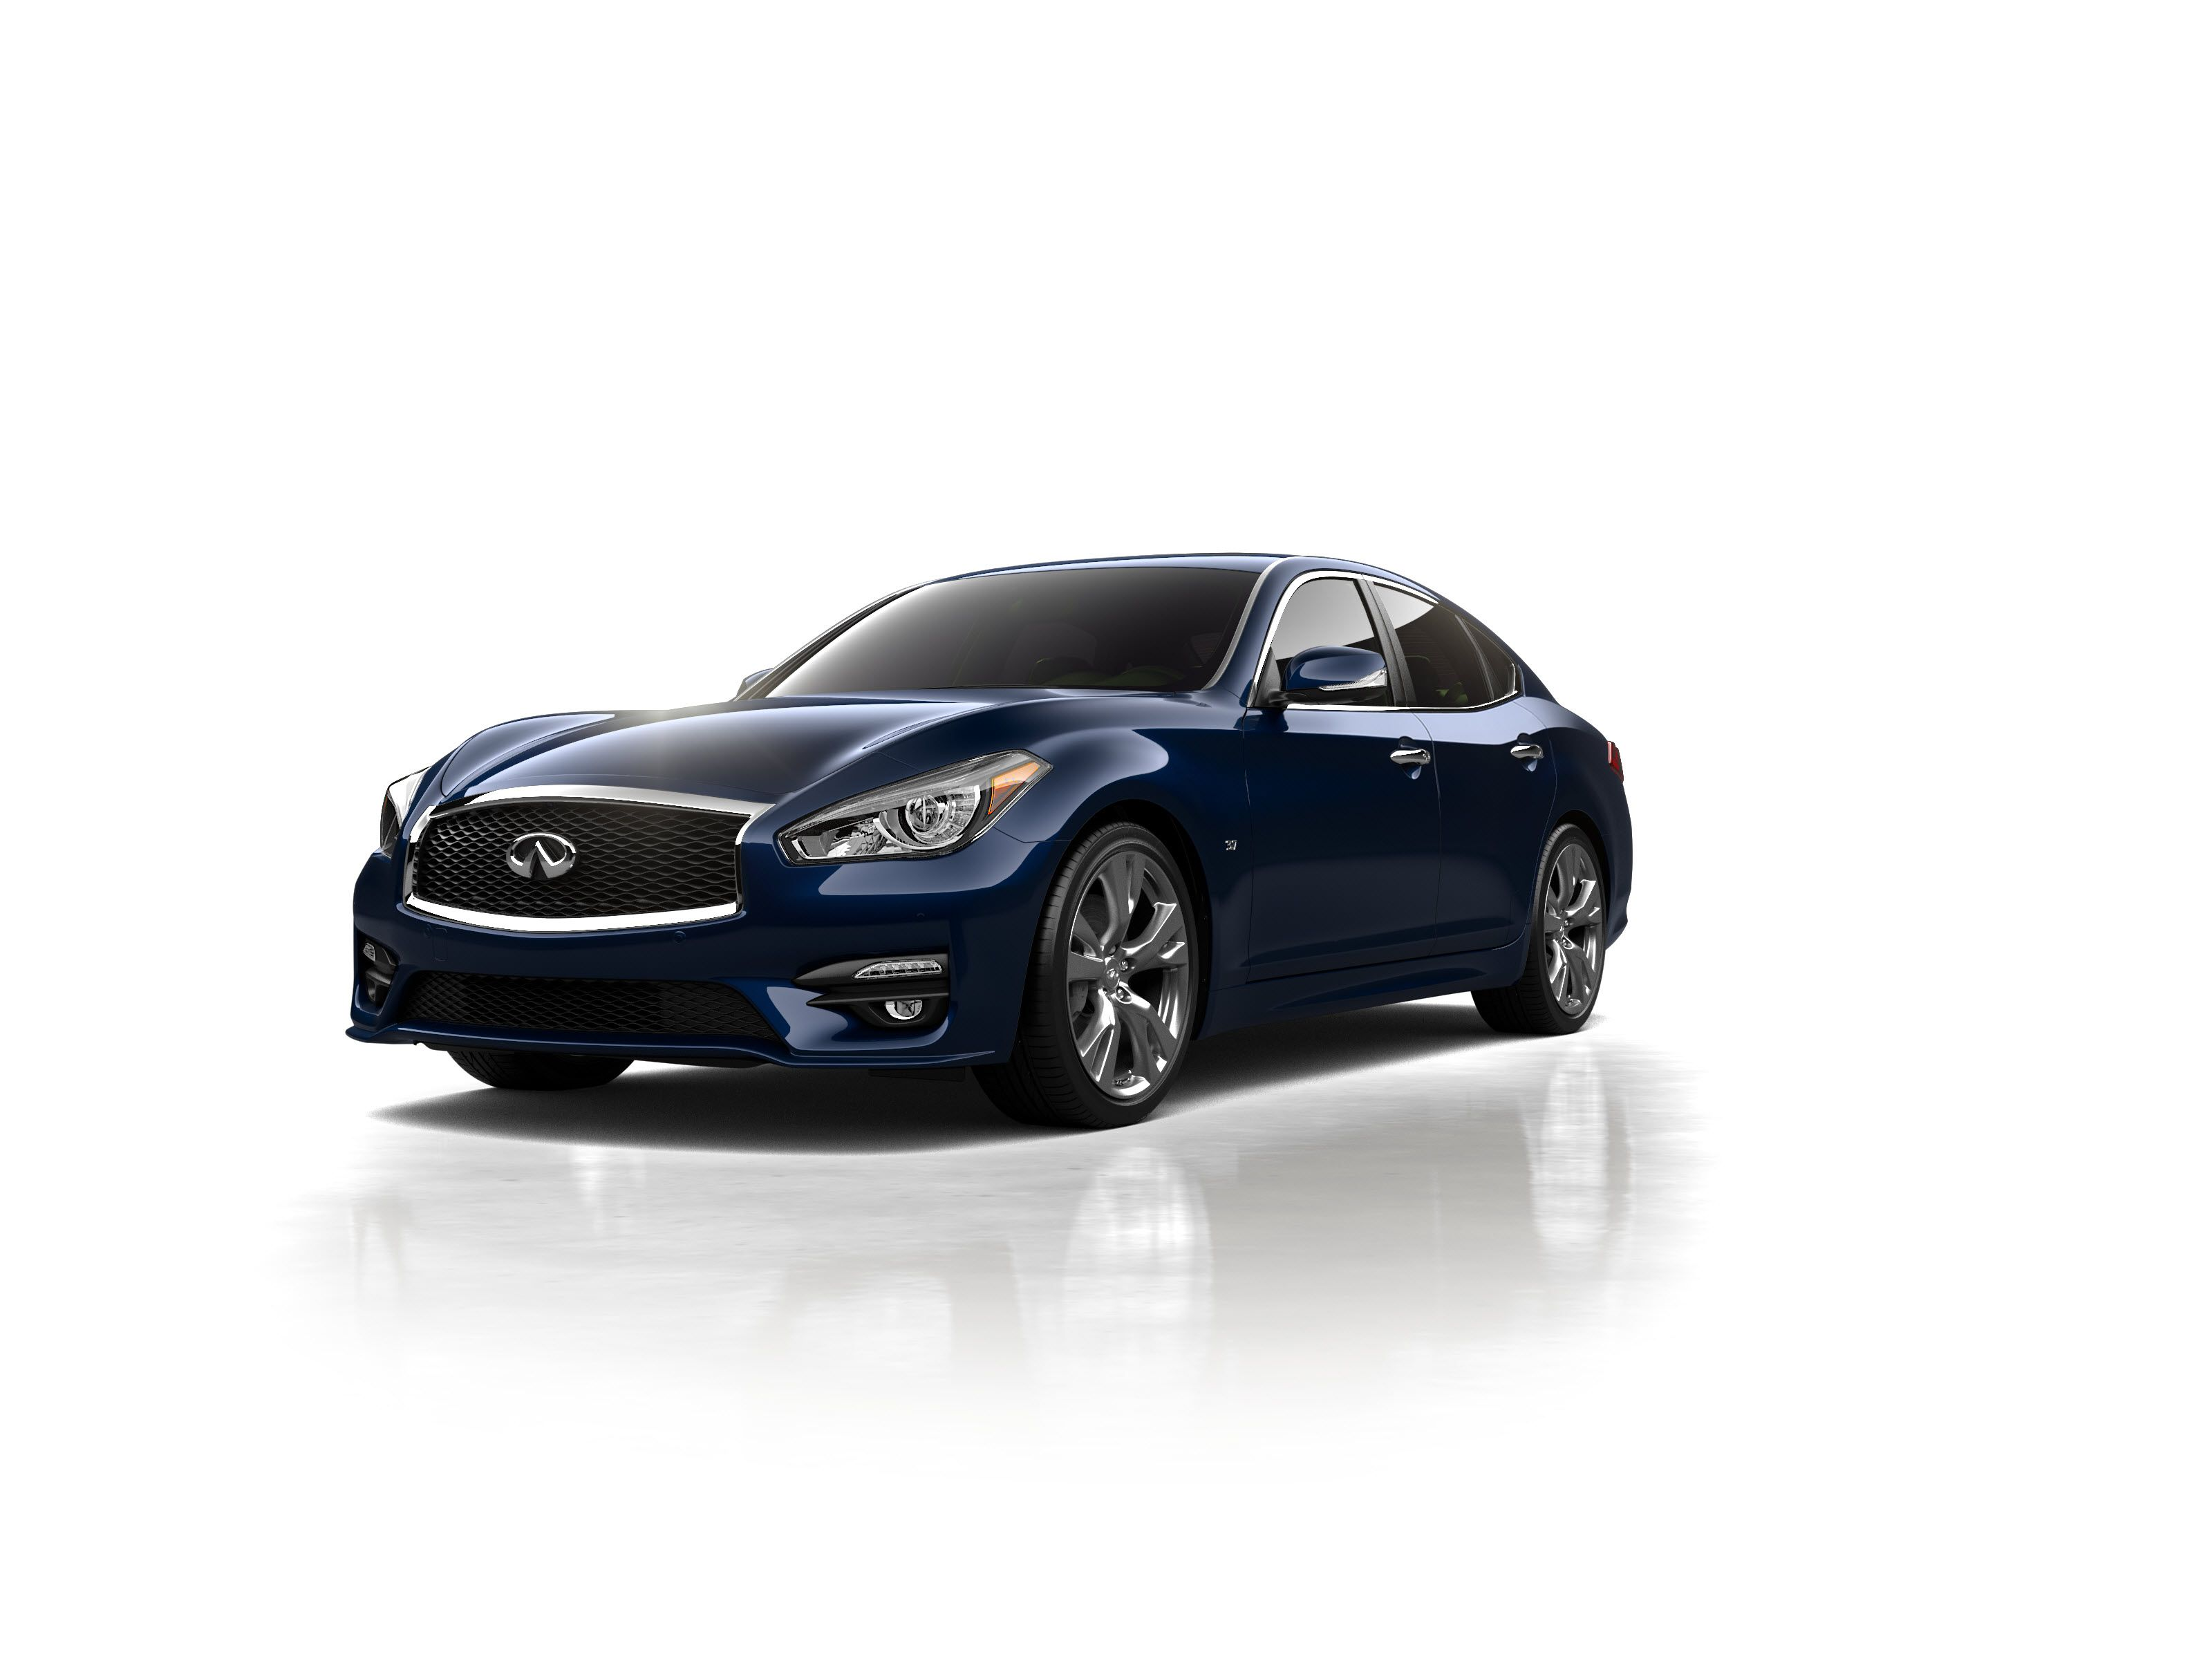 review autotalk years ago two infinity infiniti cars